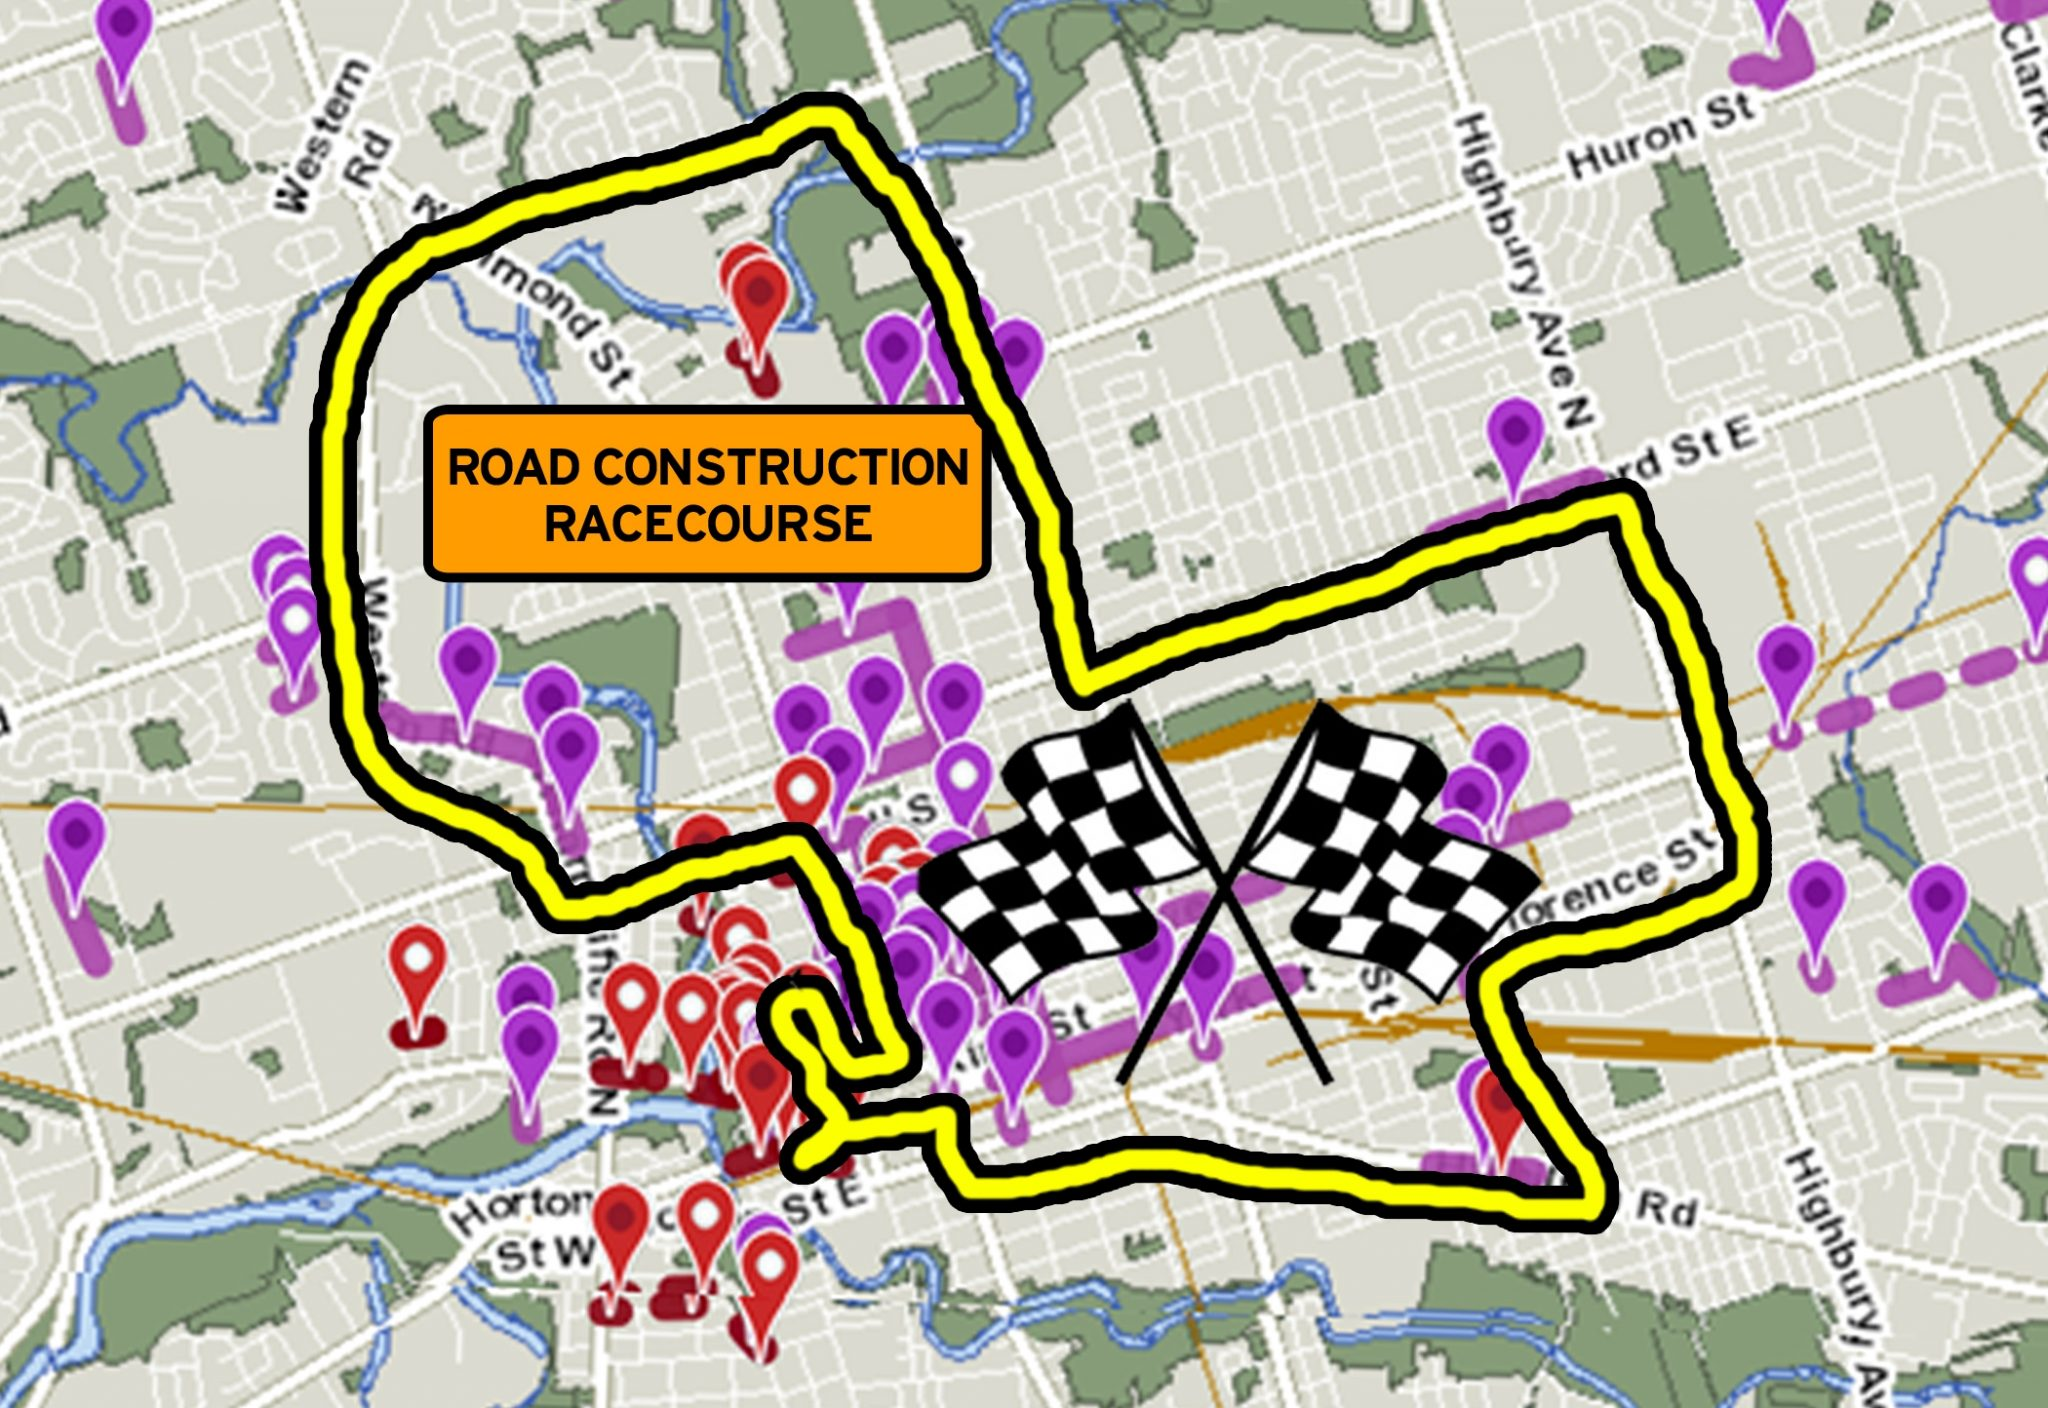 Starting at LondonFuse, here's your 2018 Road Construction Grand Prix route.